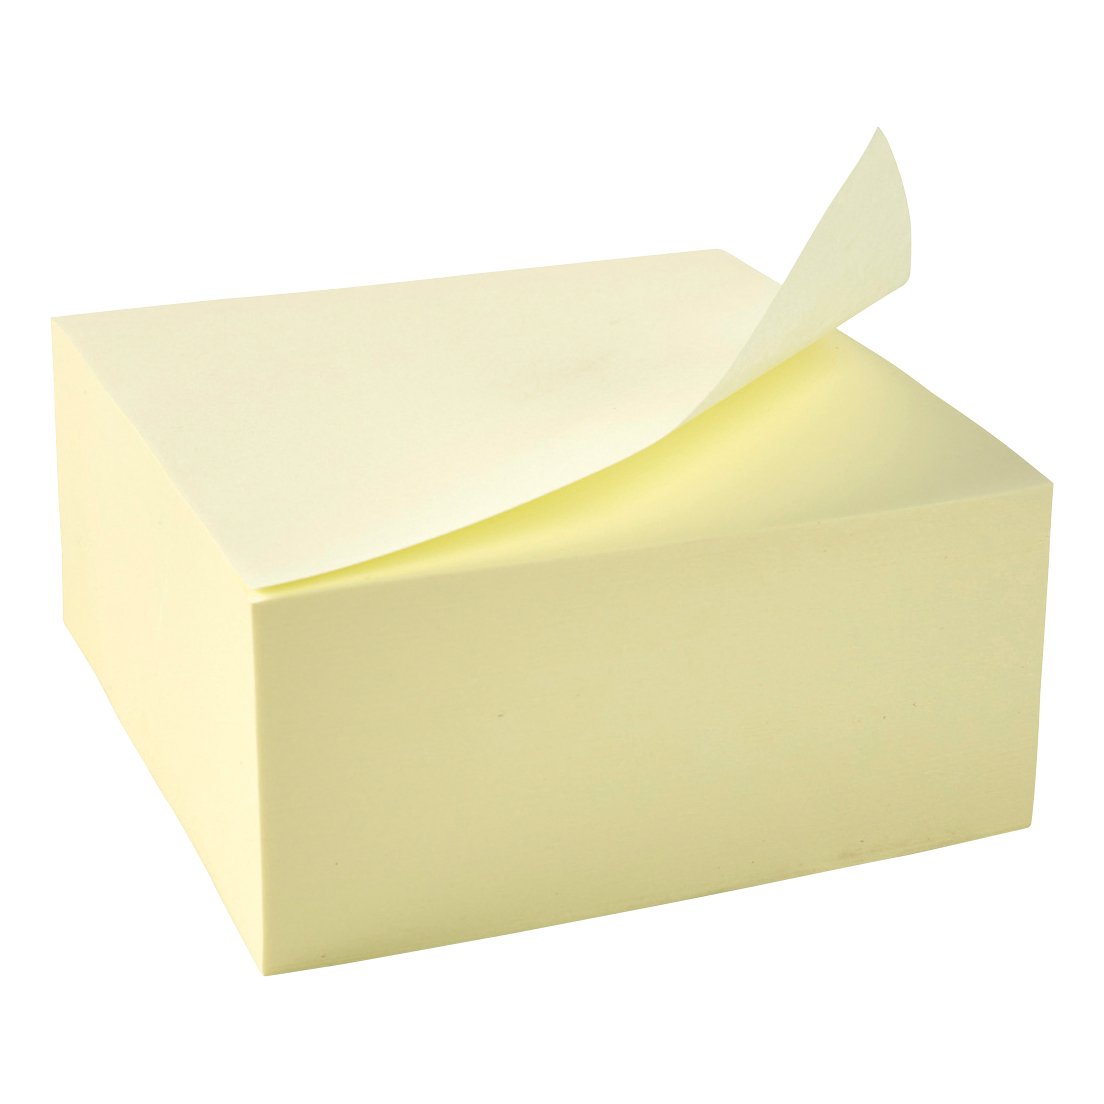 Shapes 5 Star Office Re-Move Notes Cube Pad of 400 Sheets 76x76mm Yellow